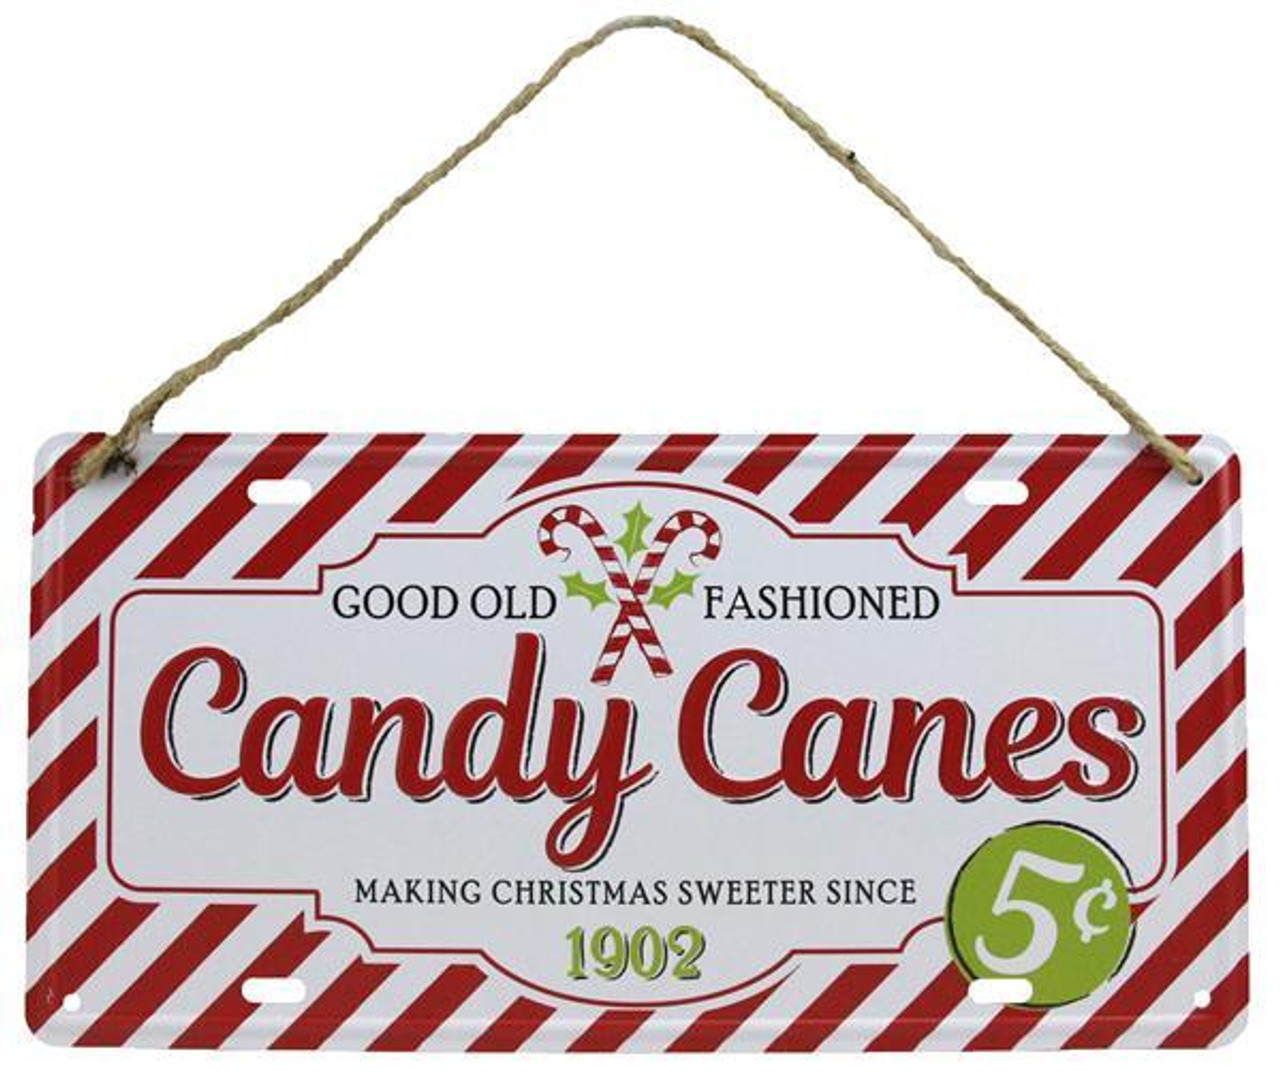 12 Tin Candy Canes Sign Md0385